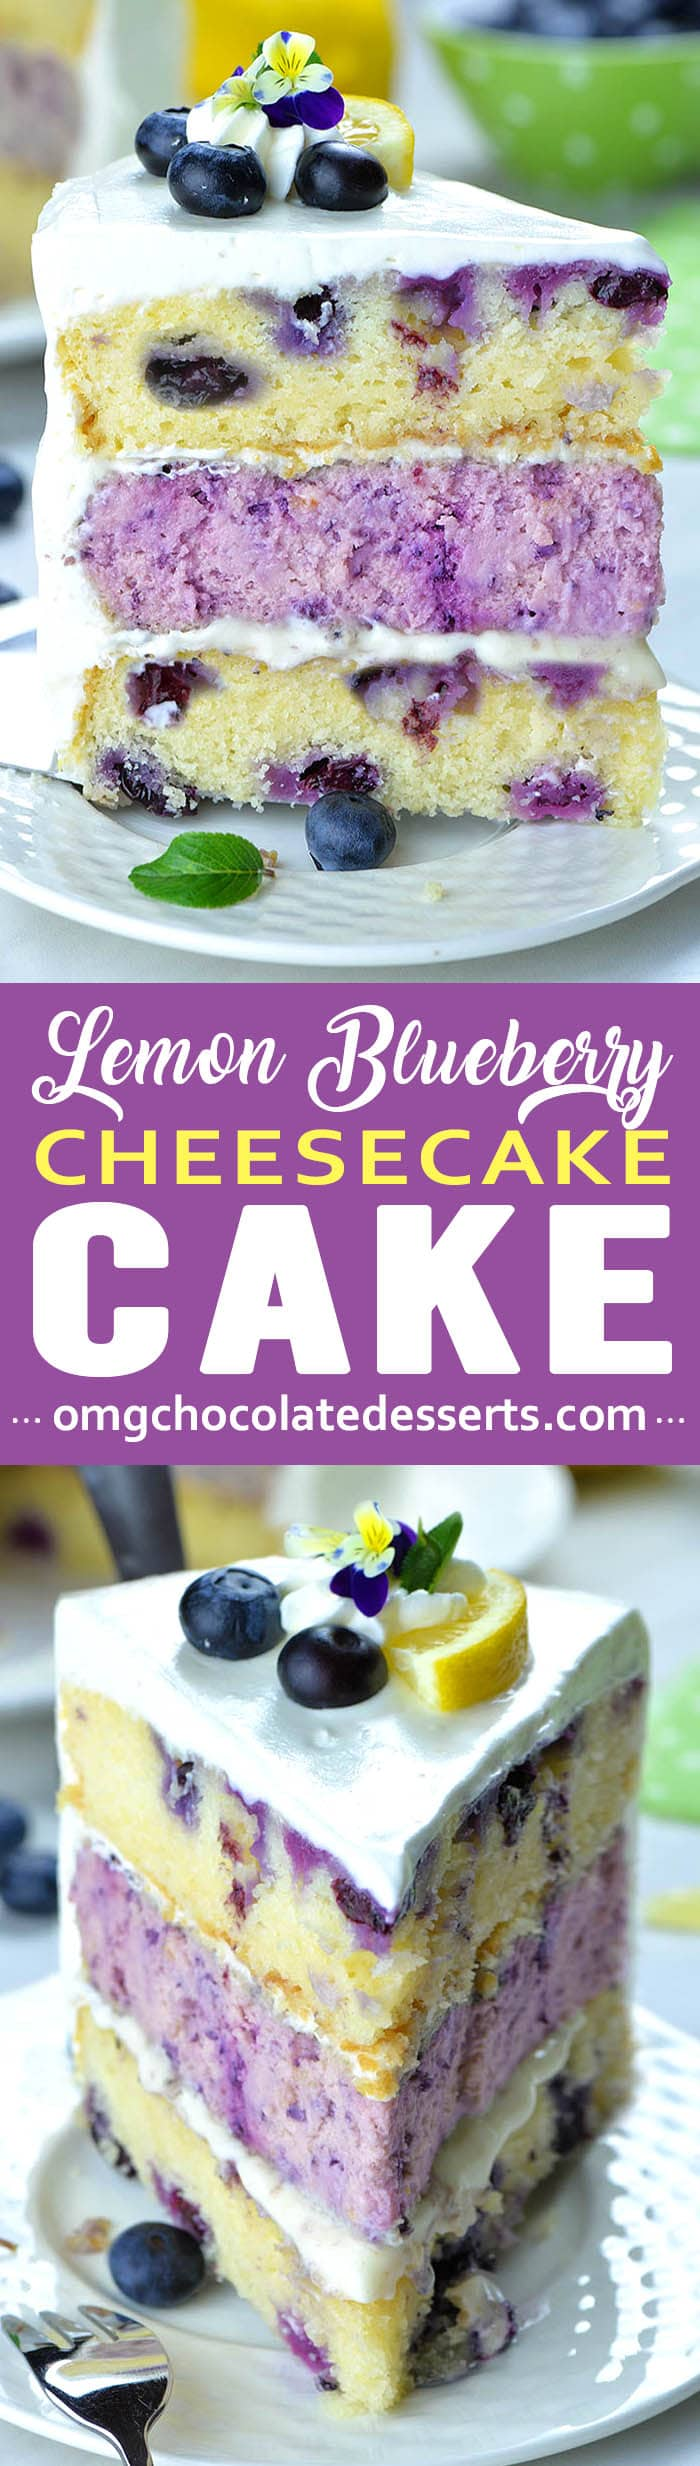 In this Lemon Blueberry Cheesecake Cake you have two delicious dessert, lemon blueberry cake with cream cheese frosting and delicious blueberry cheesecake, packed in one amazing treat.